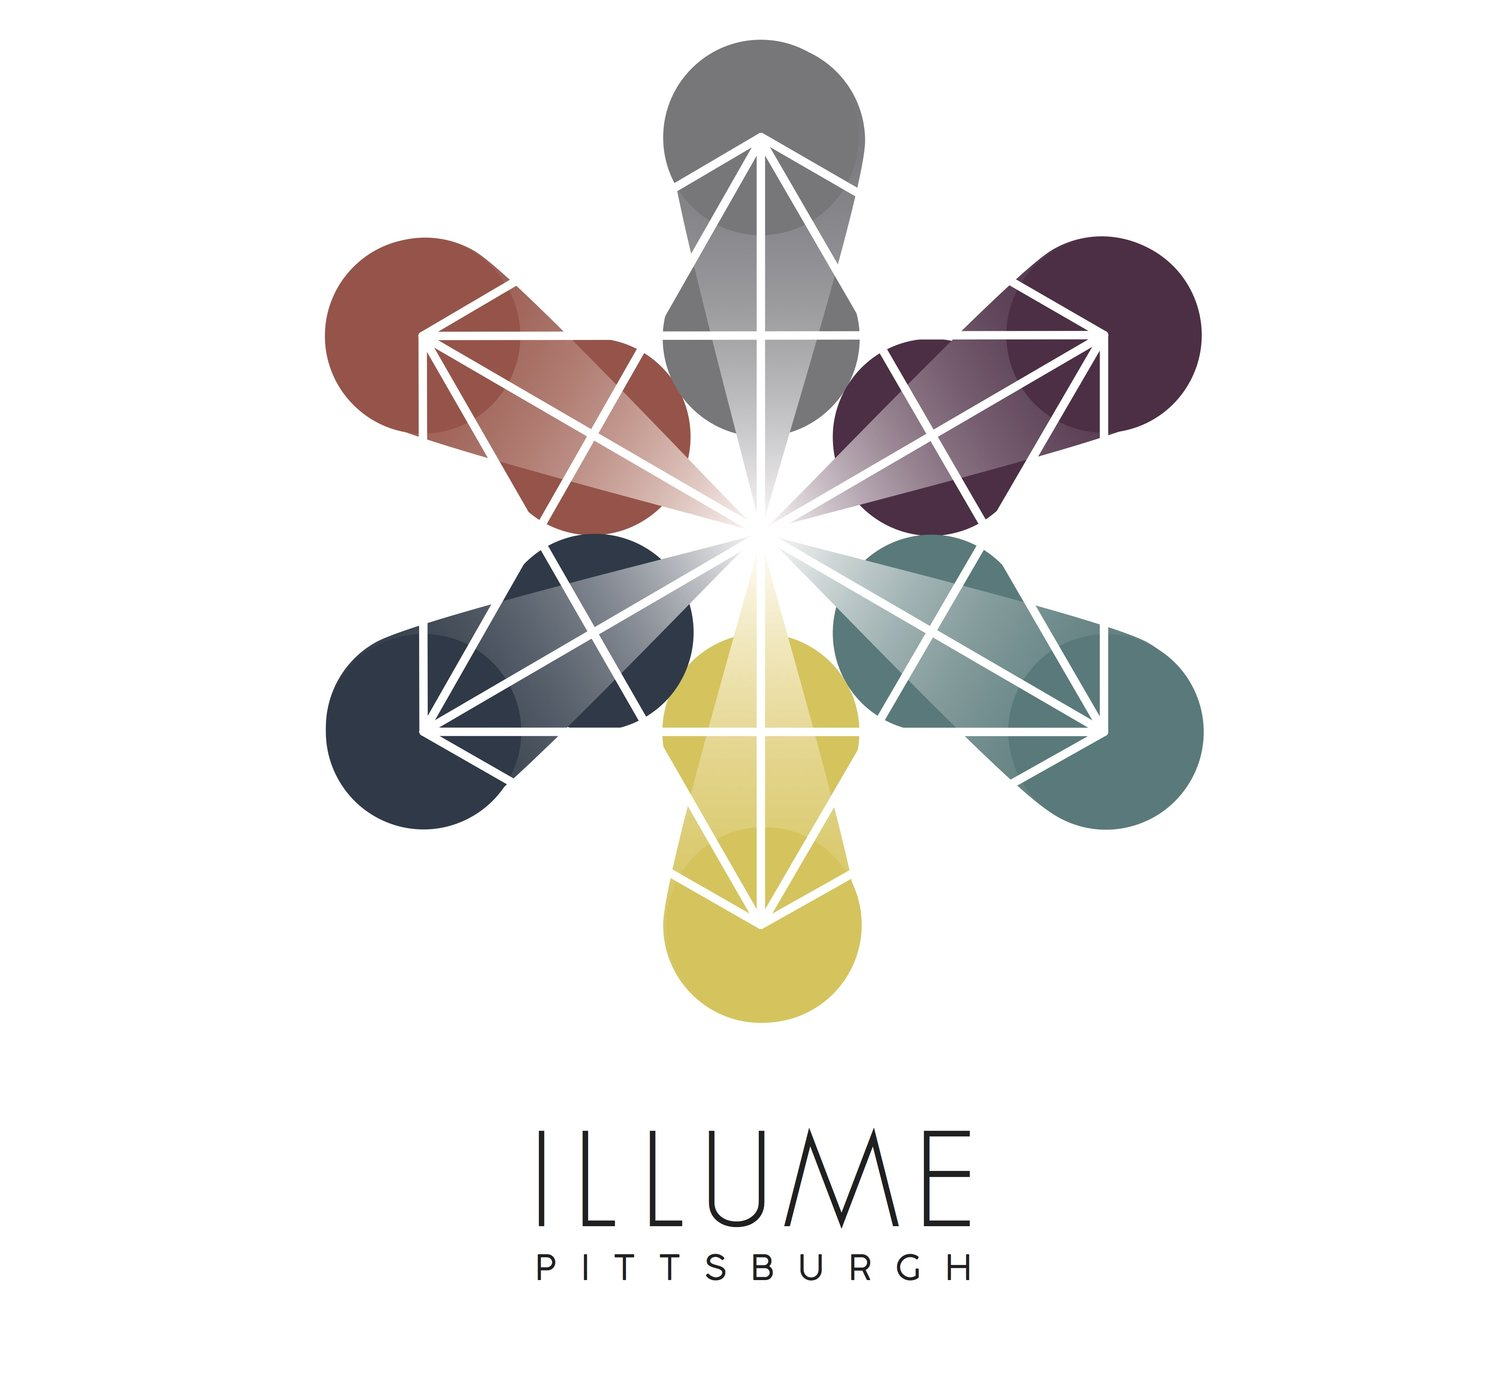 ILLUME Pittsburgh